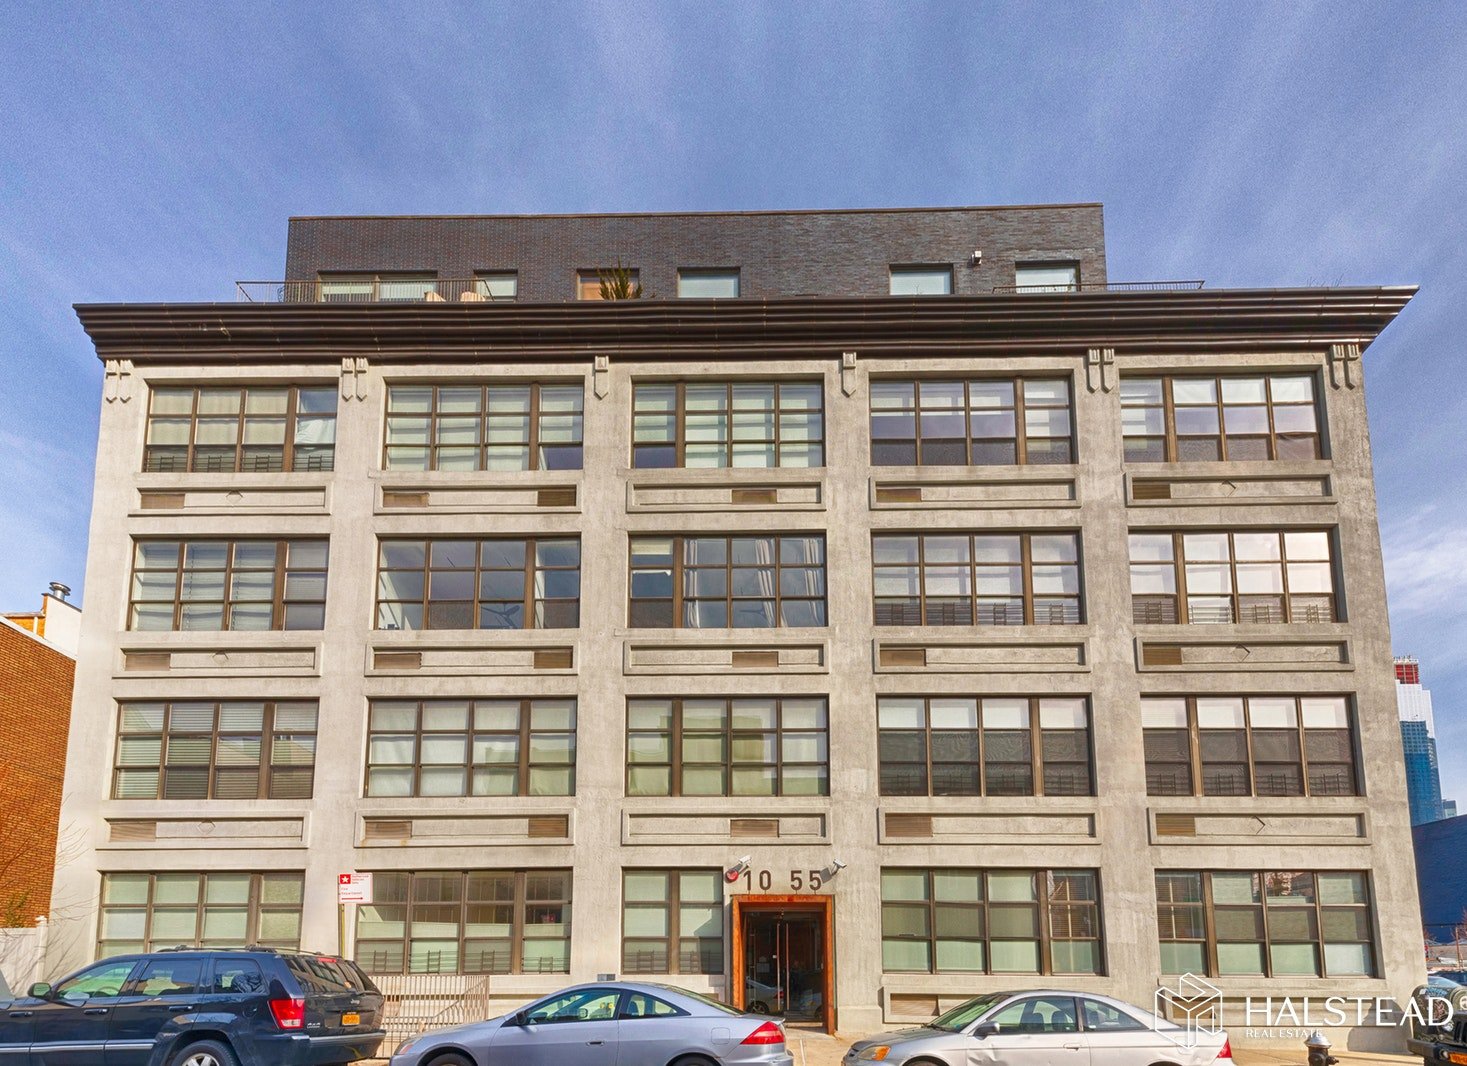 Large One Bed With Home Office & Terrace, Long Island City, Queens, NY, 11101, $1,120,000, Property For Sale, Halstead Real Estate, Photo 9